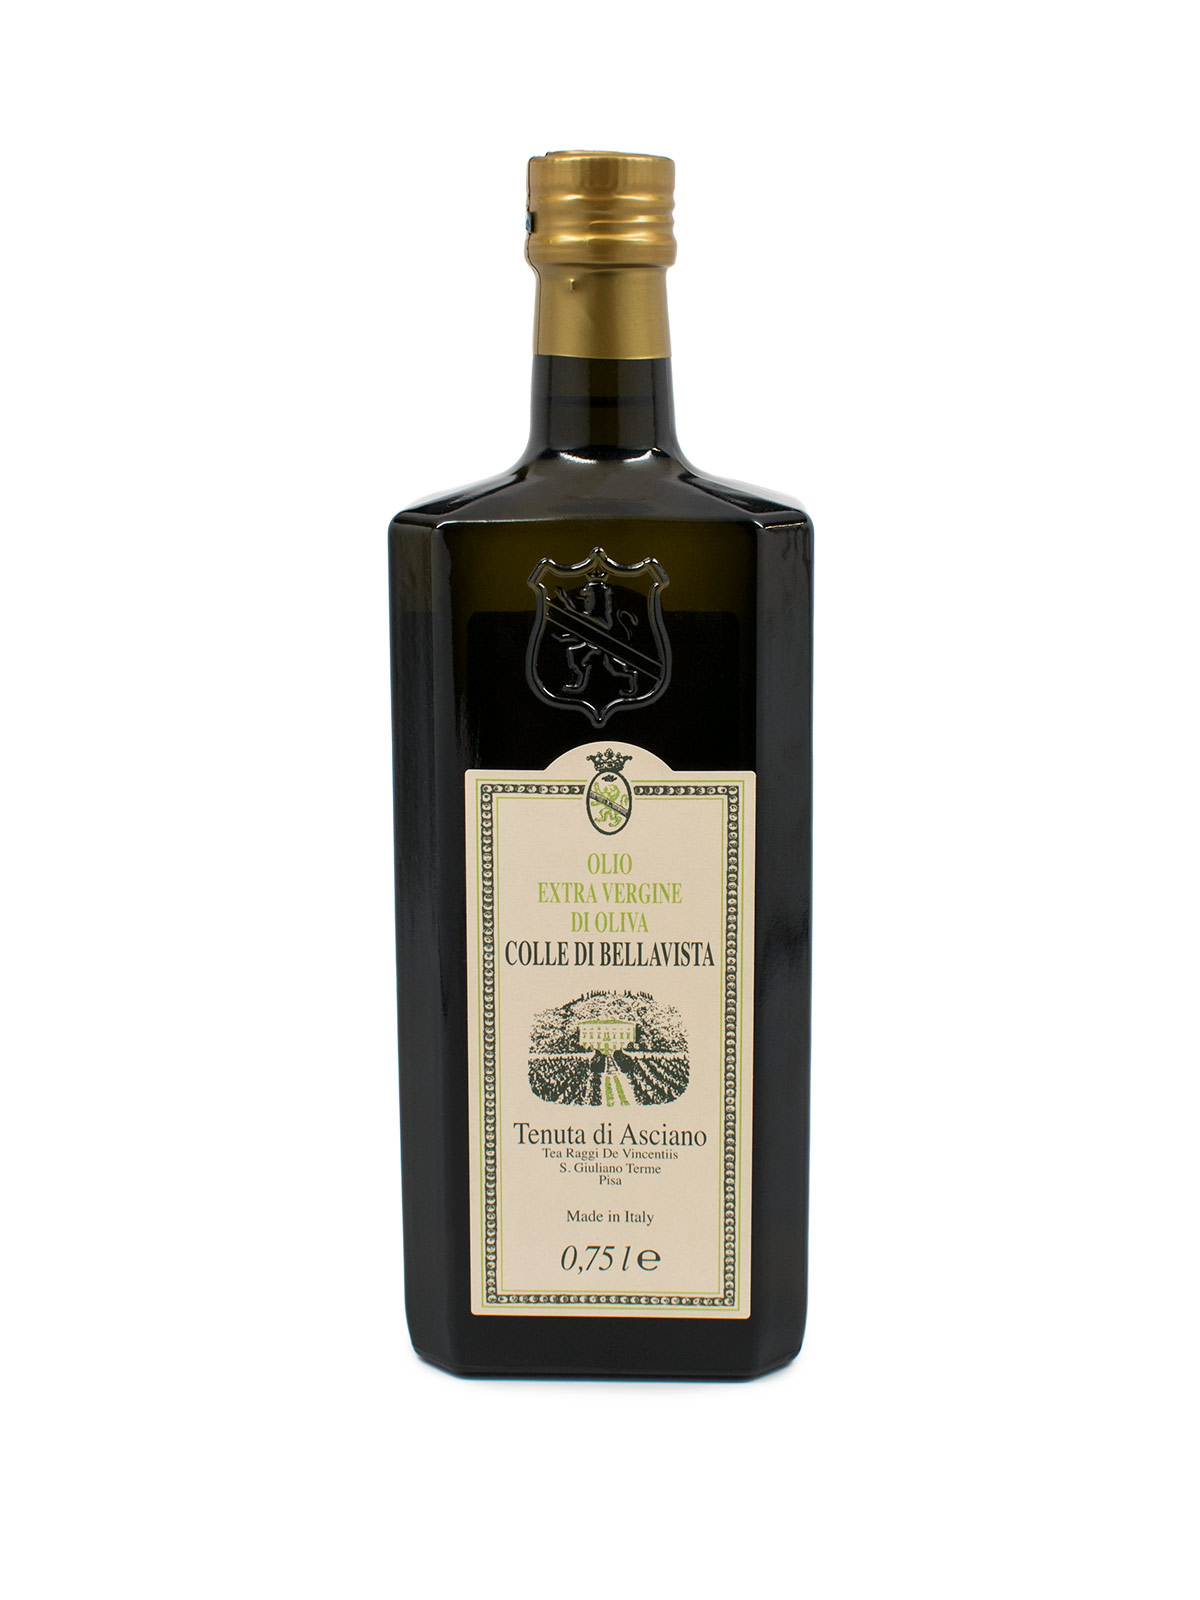 Colle di Bellavista Extra Virgin Olive Oil - Oils & Vinegars - Buon'Italia